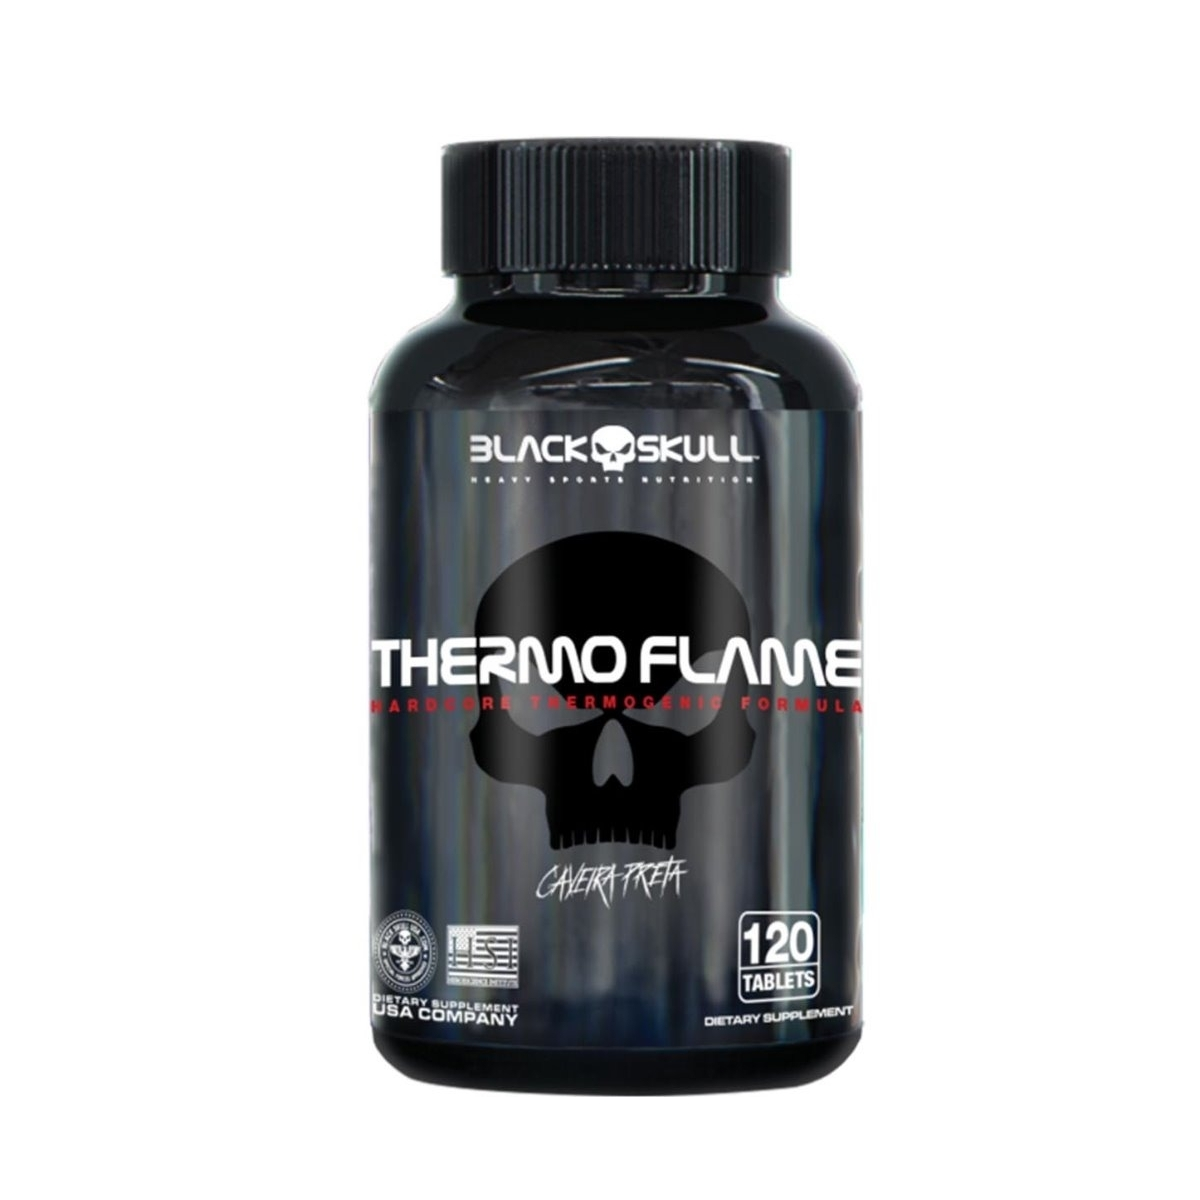 THERMO FLAME (120 TABS) - BLACK SKULL